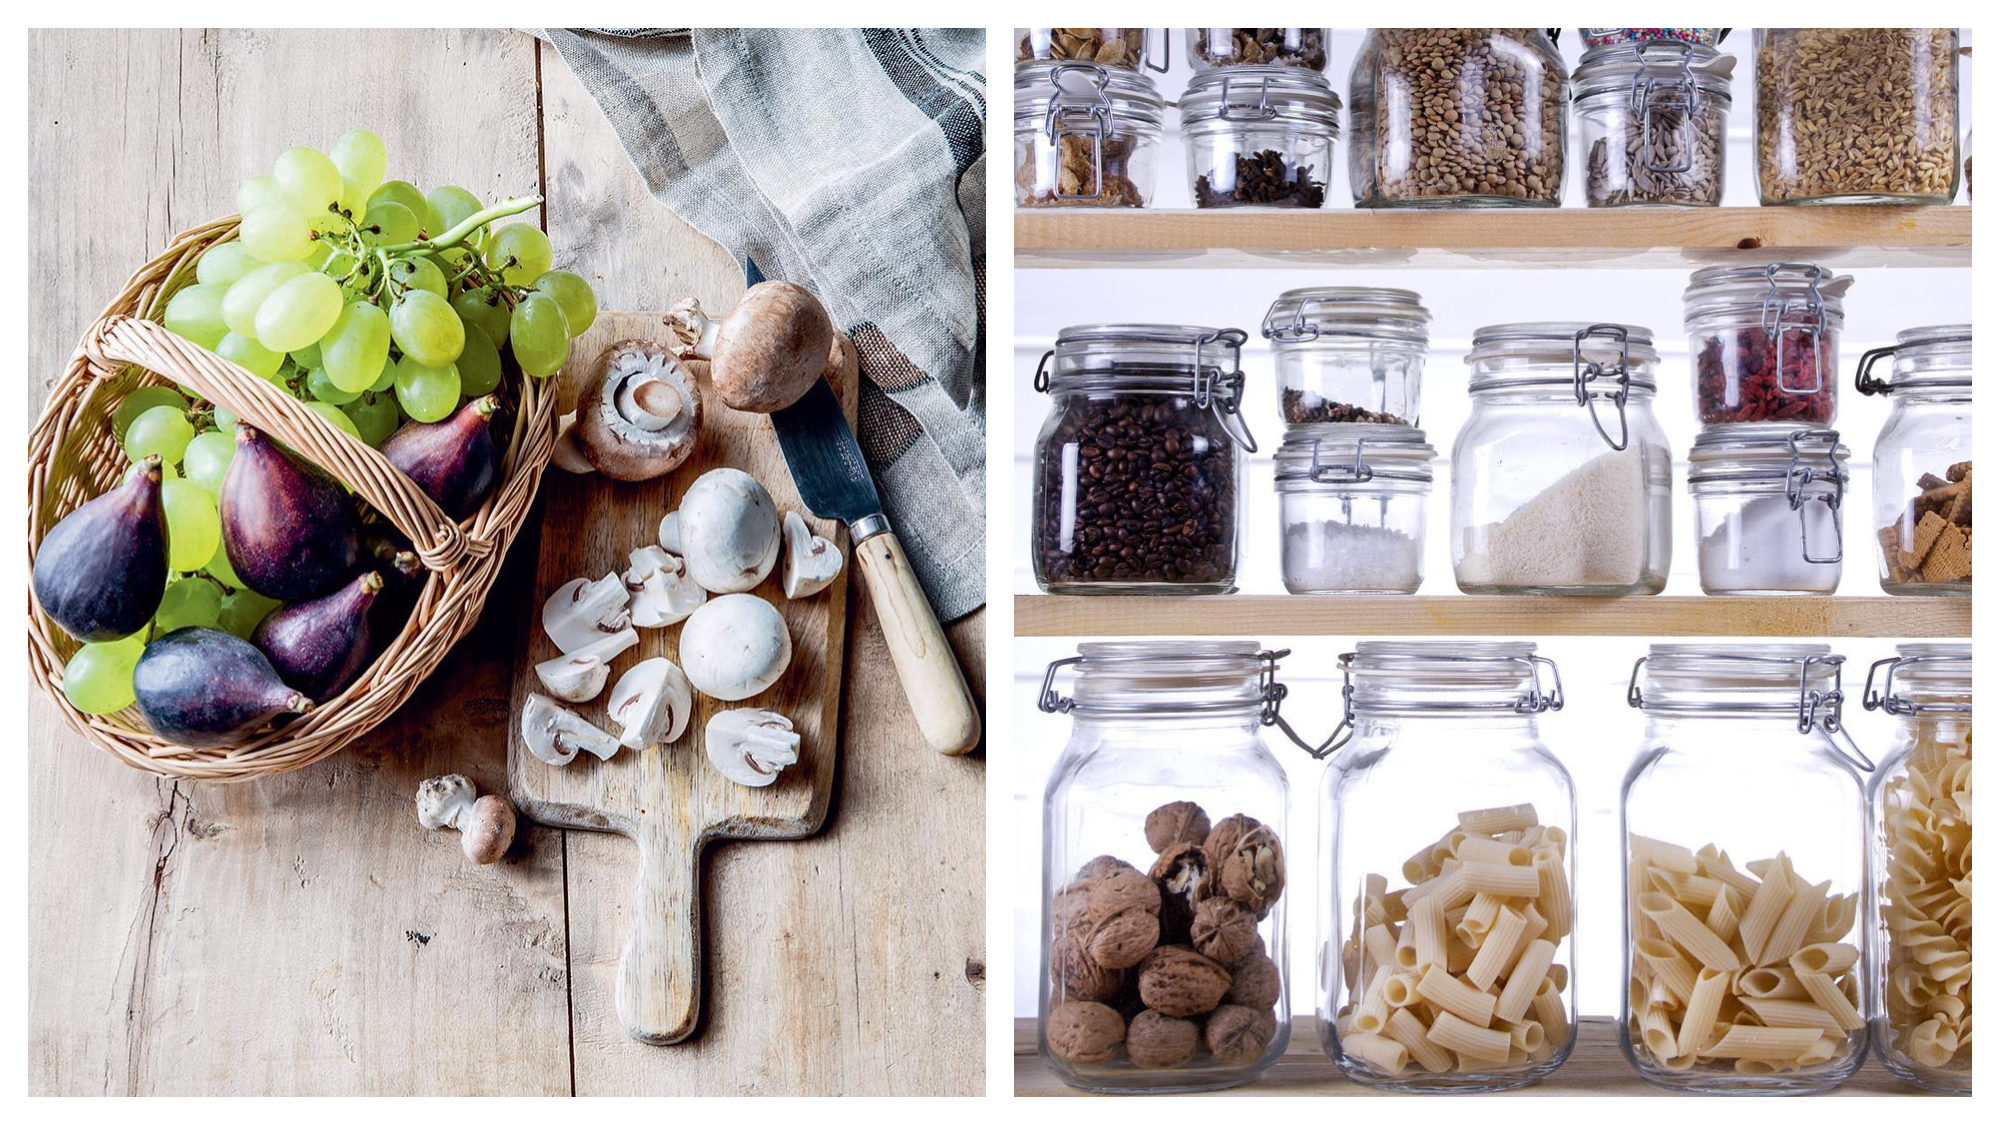 A basket of figs and grapes on a wooden table next to a chopping board of mushrooms (left) and jars of foodstuffs bought at a gluten-free store (right).